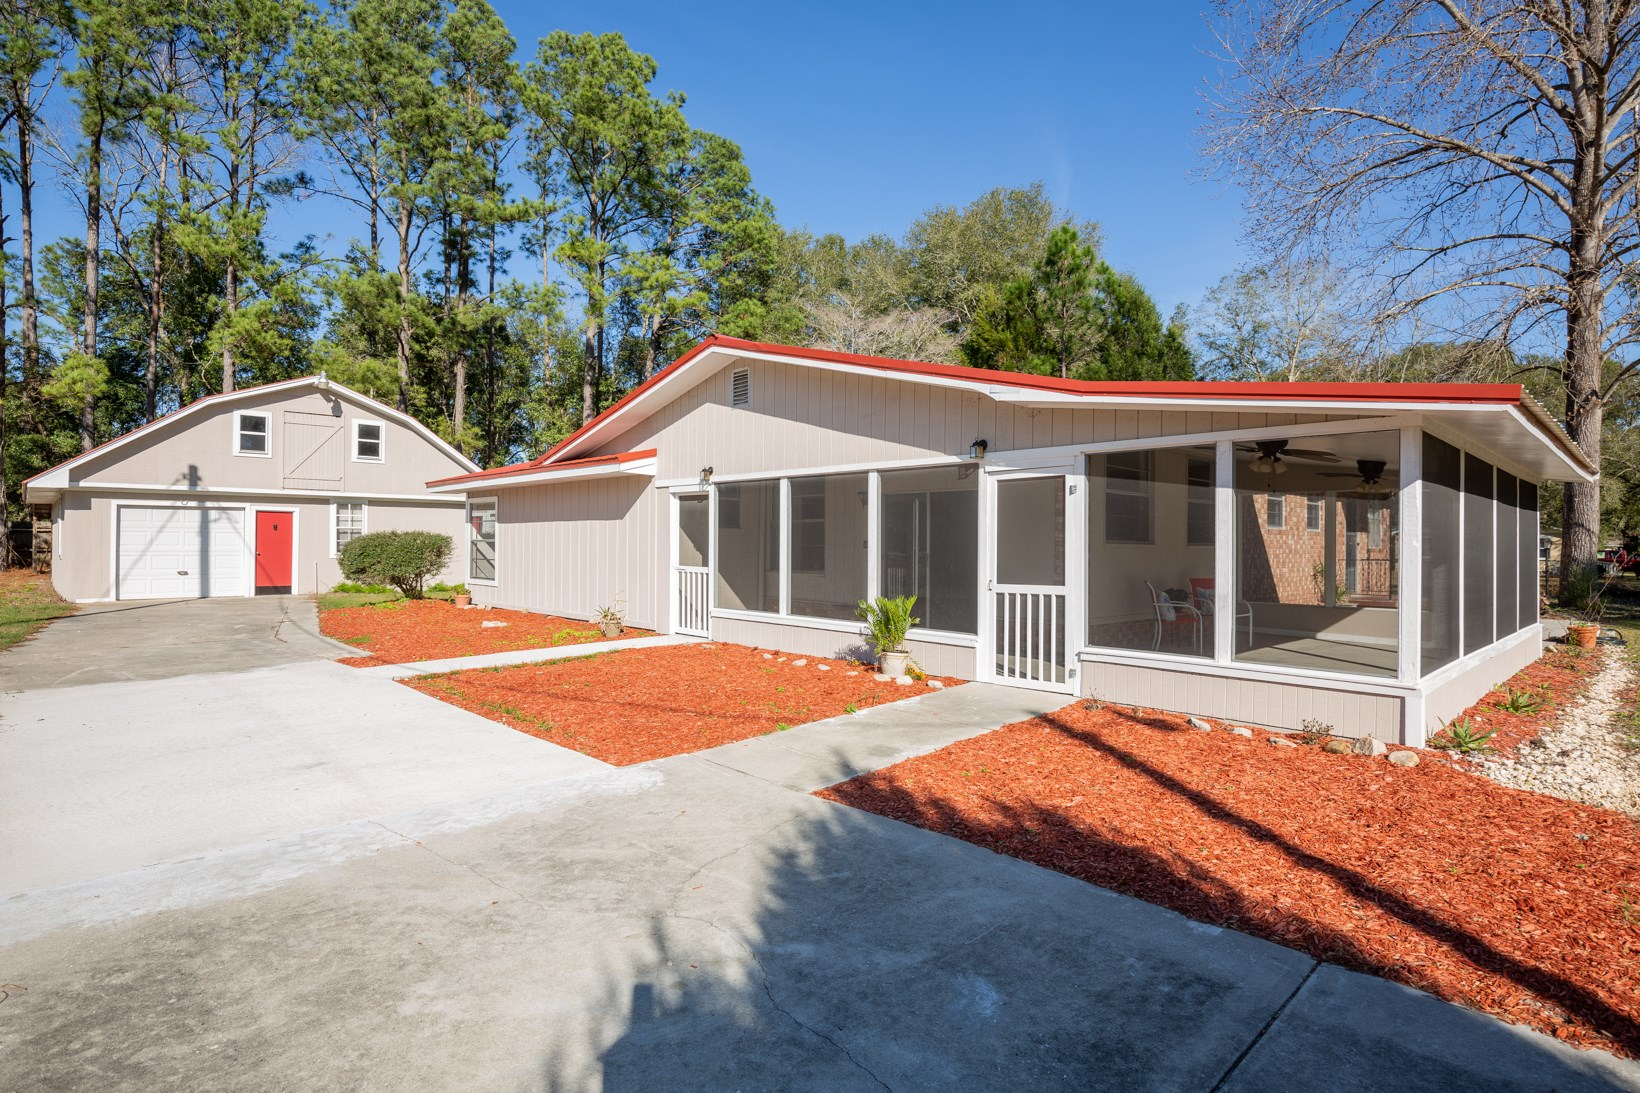 Newly Remodeled Home For Sale in Live Oak, FL